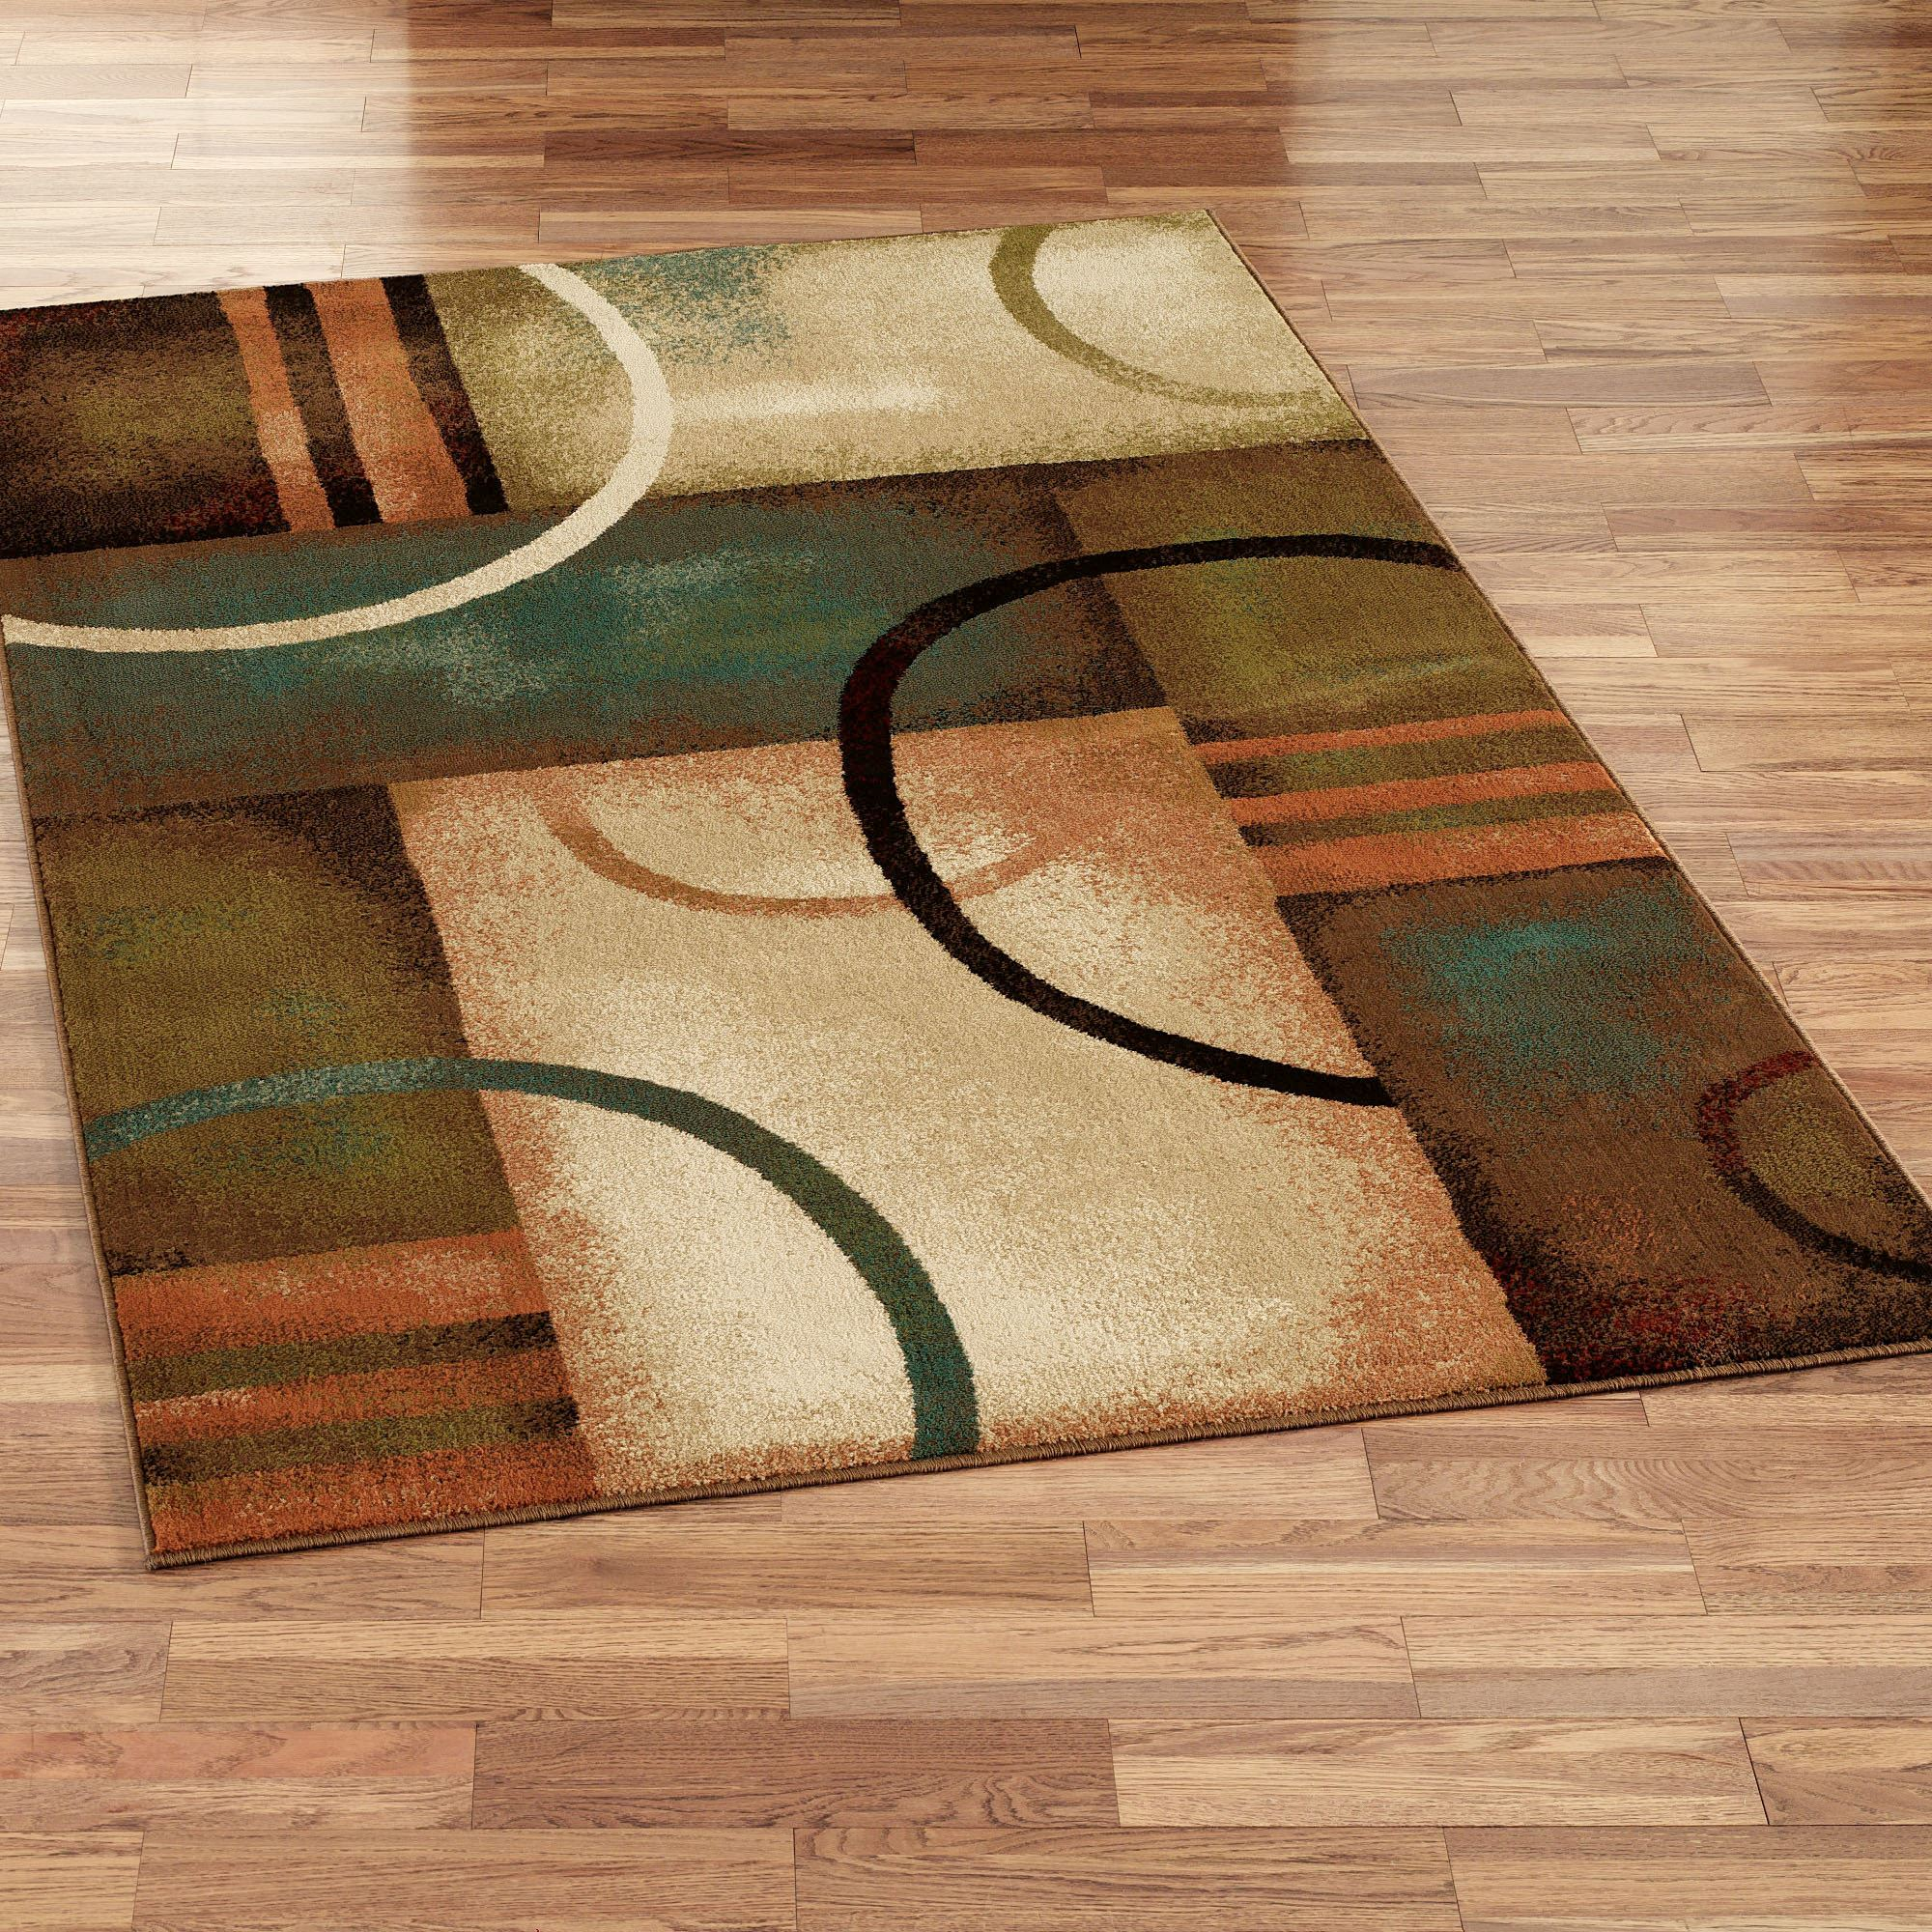 Choosing the contemporary area rugs for your home